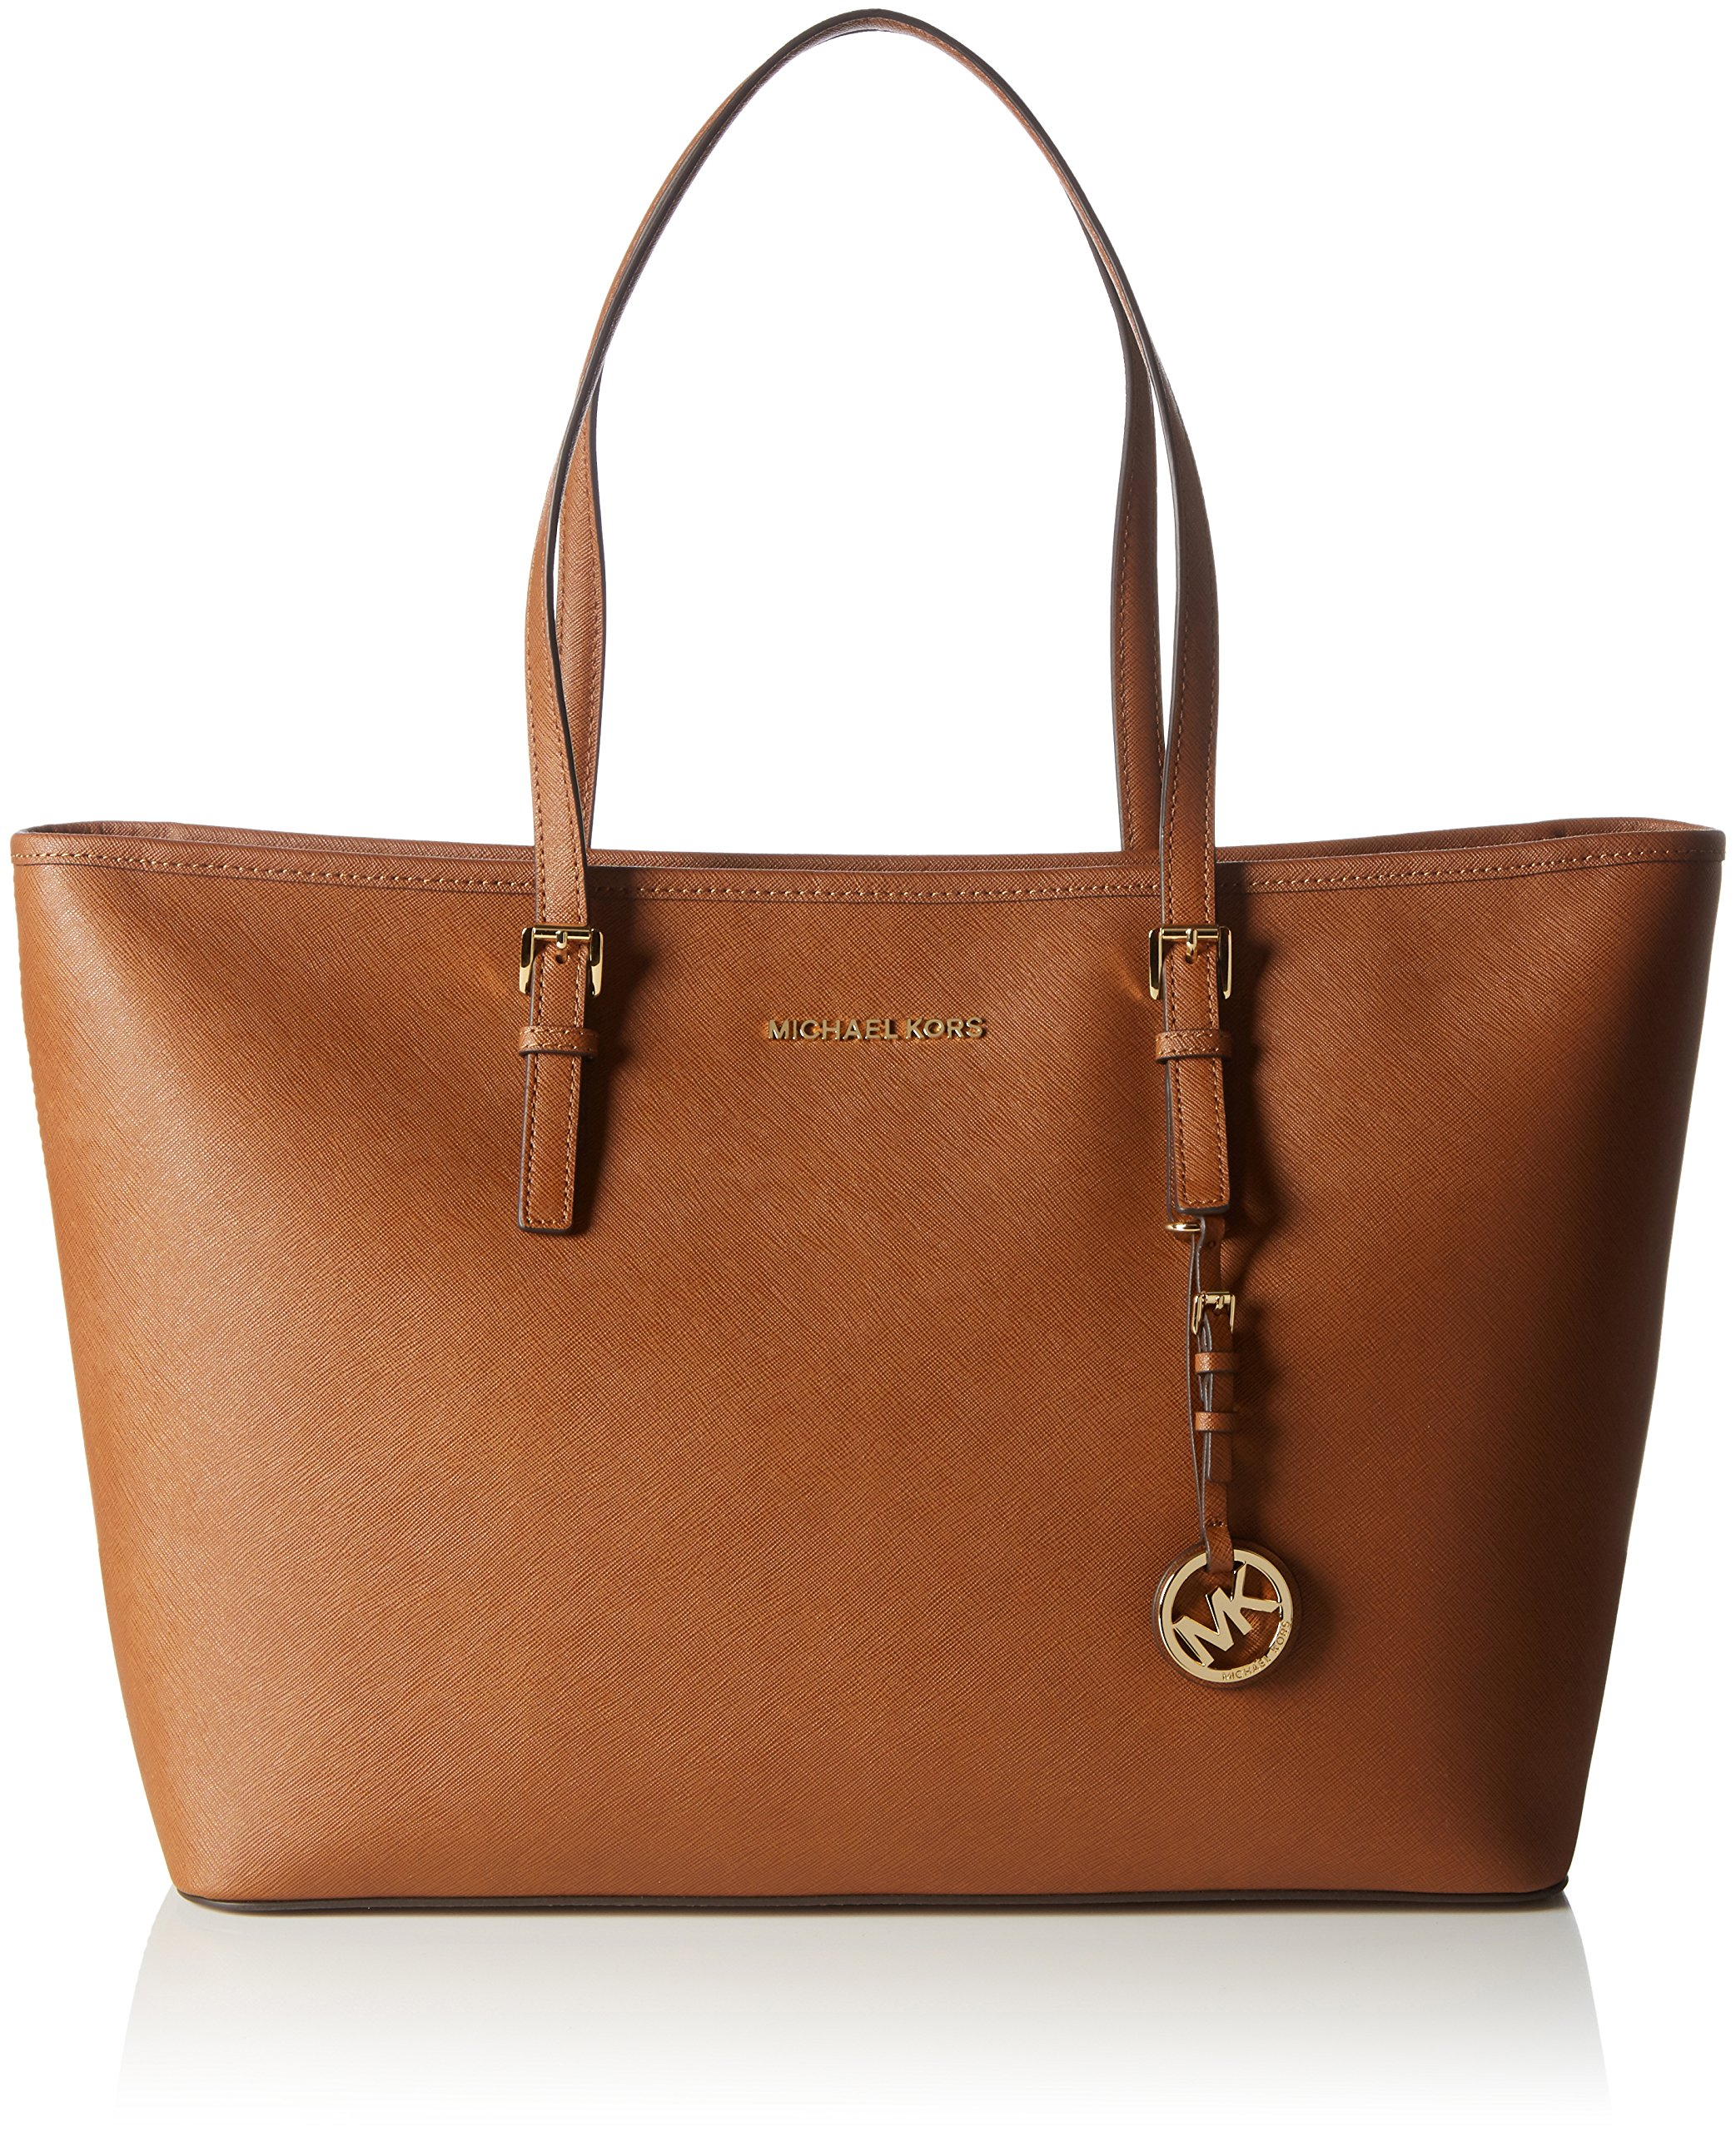 786b9a9a6268 Michael Kors Jet Set Travel Medium Saffiano Leather Top-Zip Tote, michael  kors jet